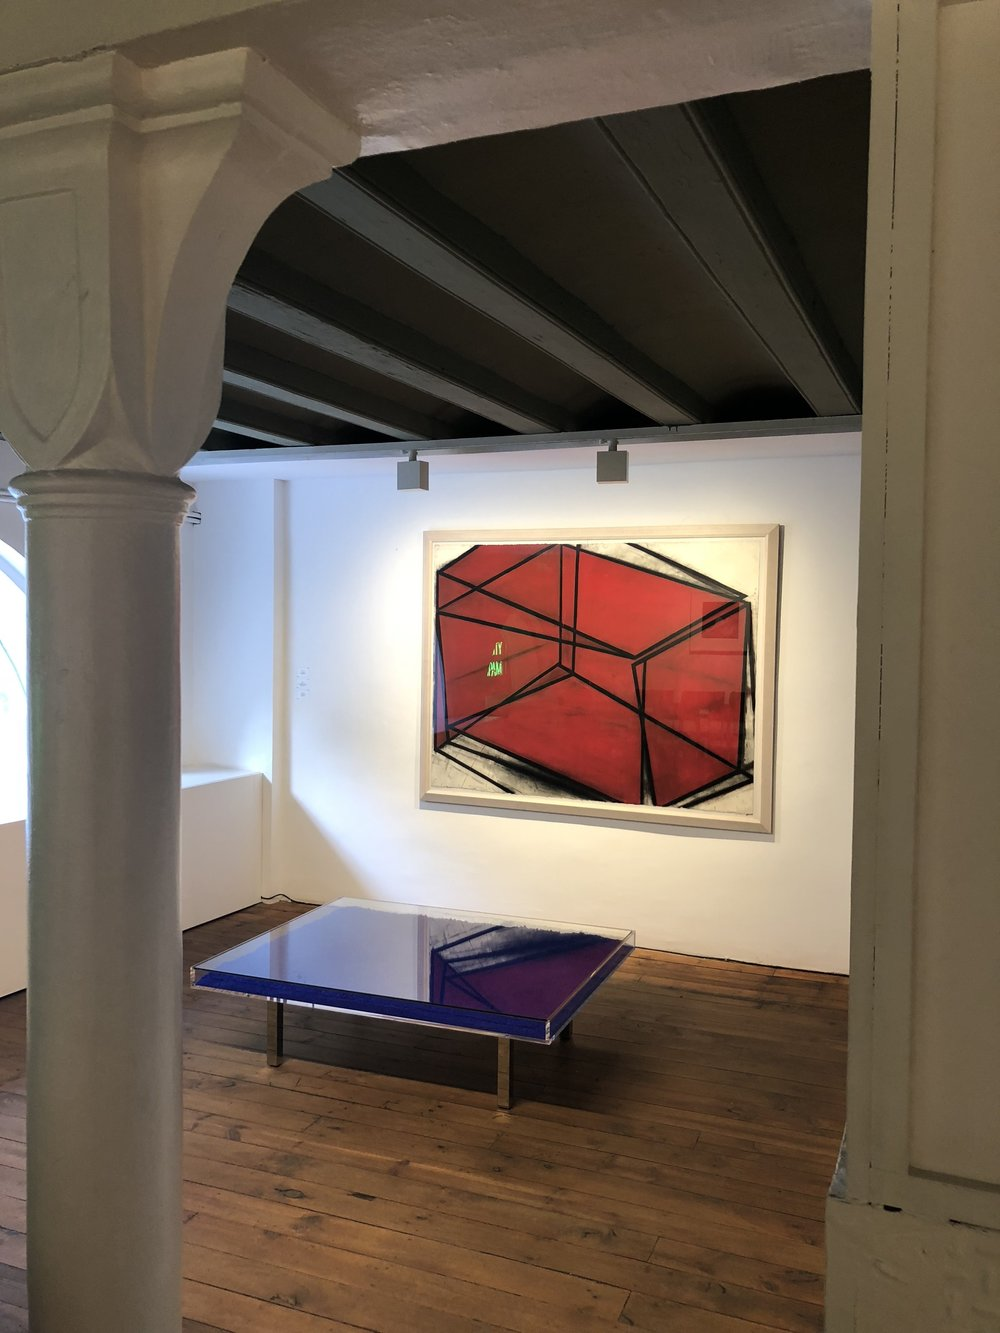 The permanent collection of Galeria Senda